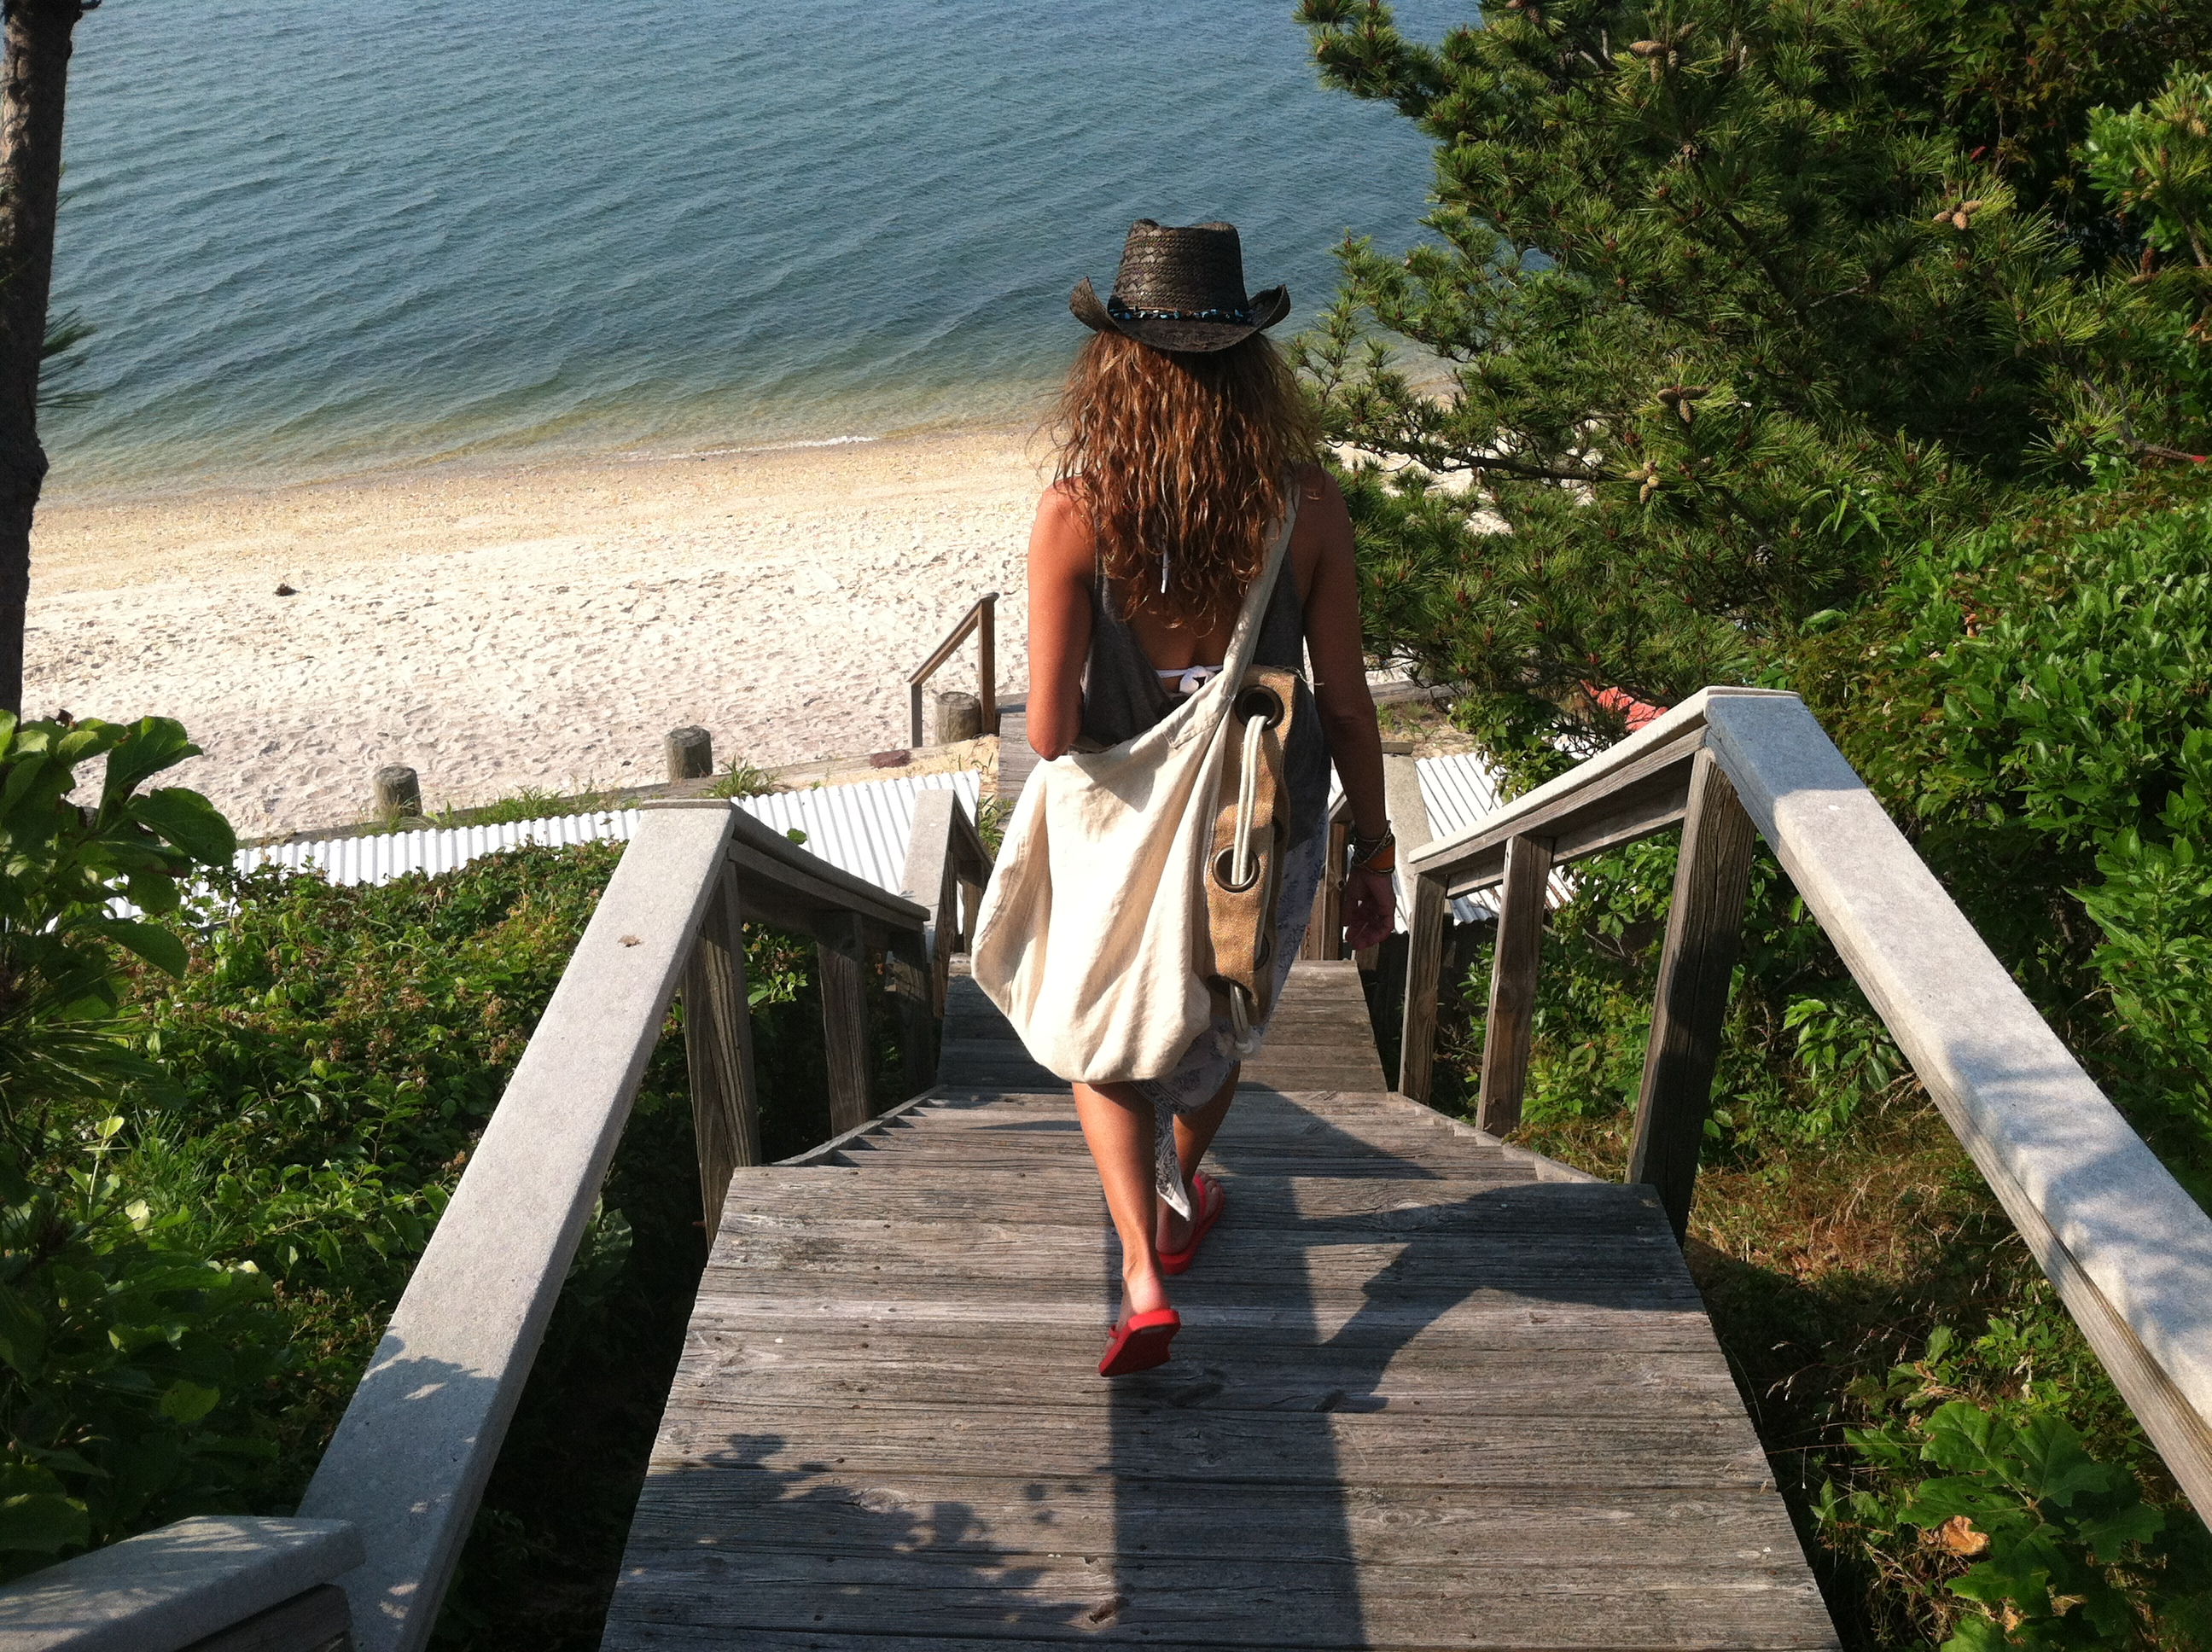 Sunset Seafood Salsa Dancing At The Beach Hut In Hampton Bays